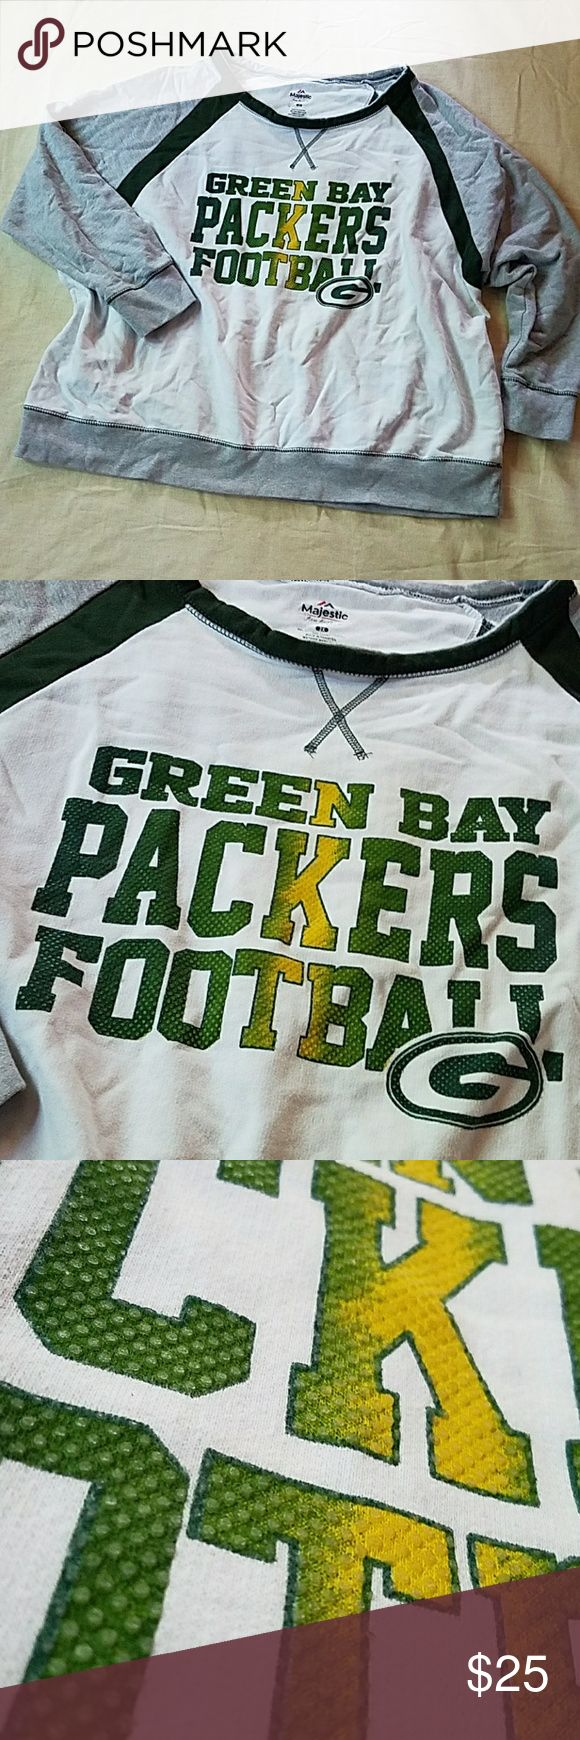 """Green Bay Packers sweatshirt Heavyweight cotton sweatshirt. Green, gold, white and heather grey. Minor pill.  Size 2X. Bust measures 29"""" flat.   There are a few fabric defects on the back as shown in the last pic. Tops Sweatshirts & Hoodies"""